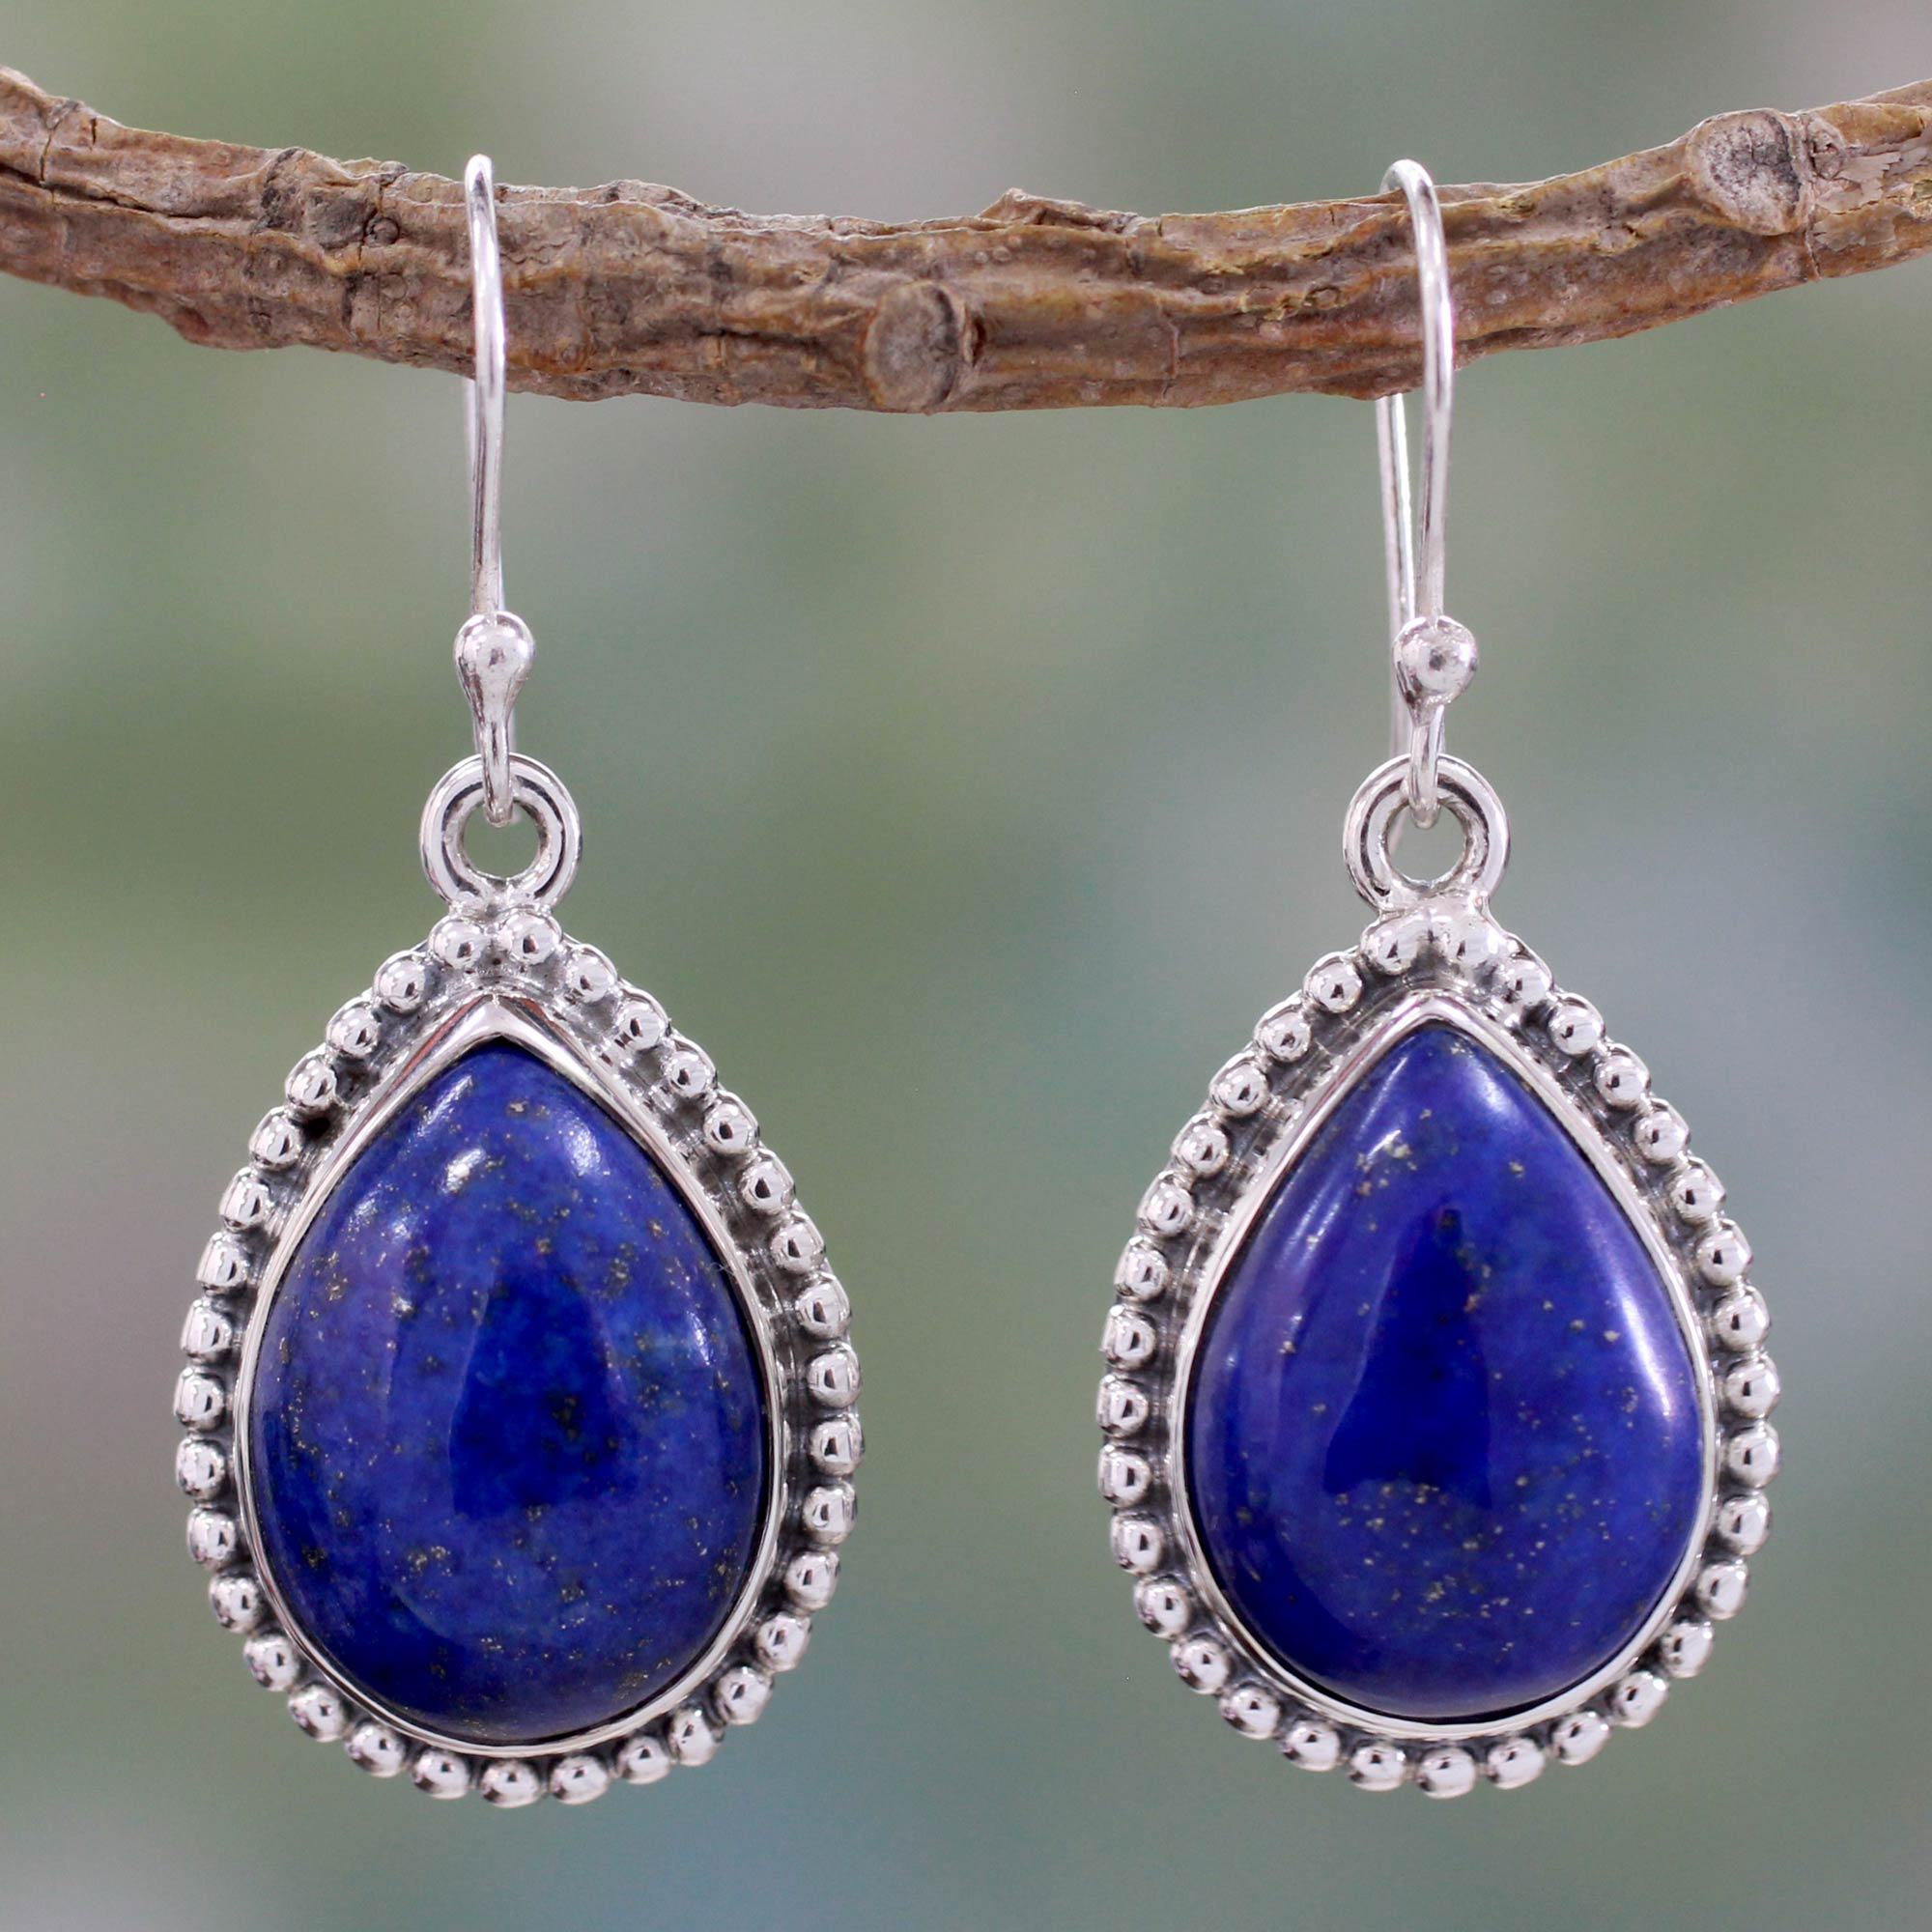 etsy meiq market earrings il lapis